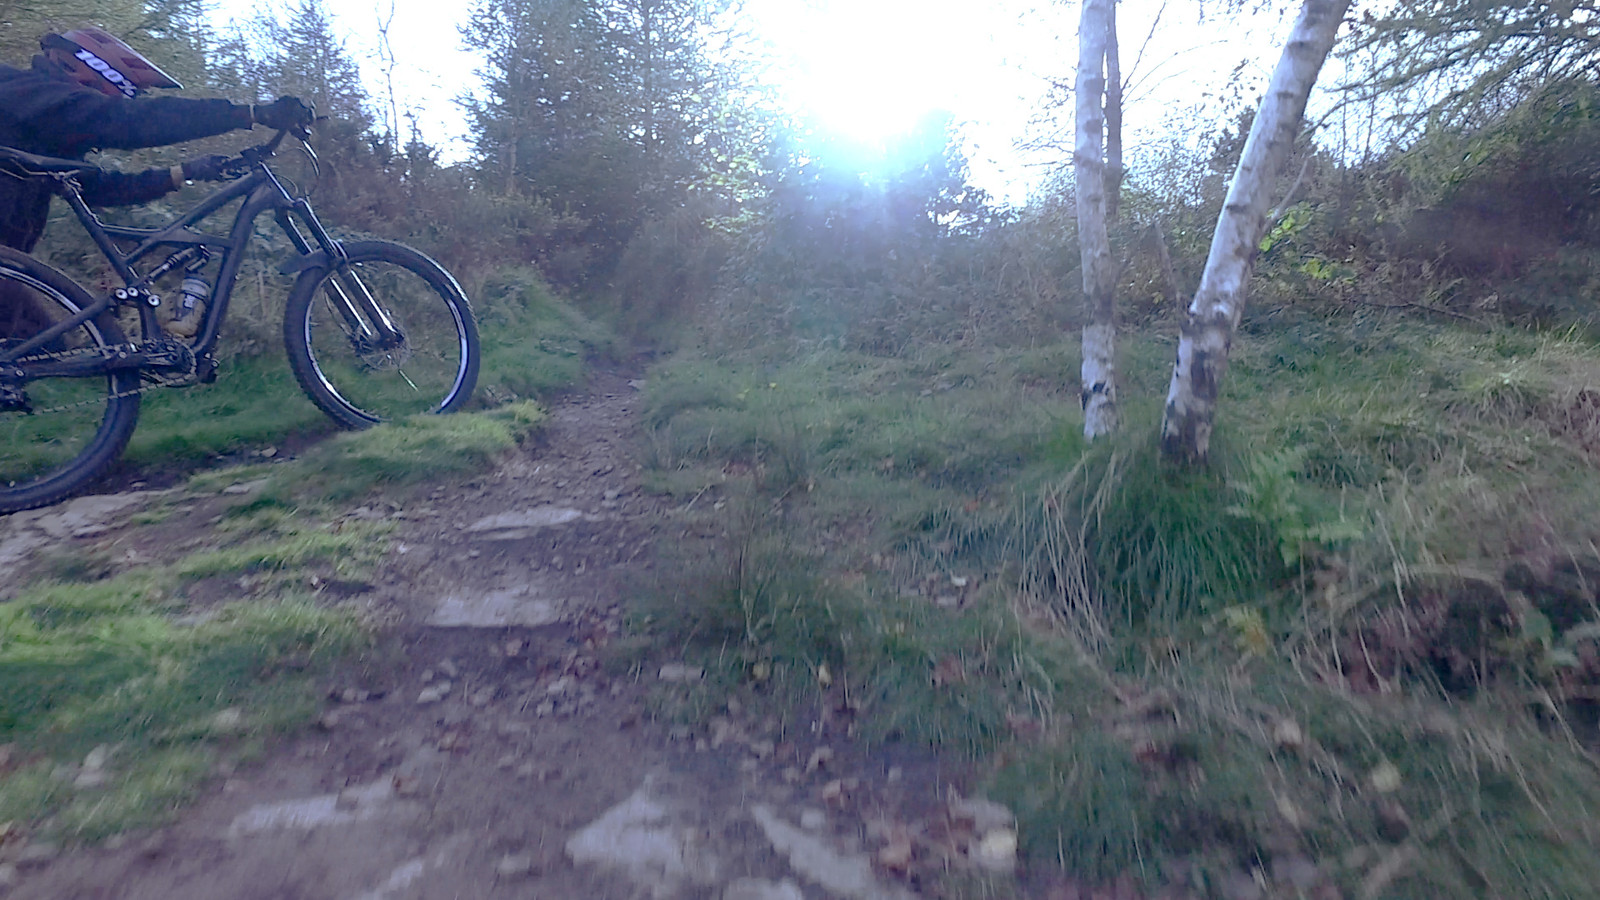 j - Matthew Davies - Mountain Biking Pictures - Vital MTB